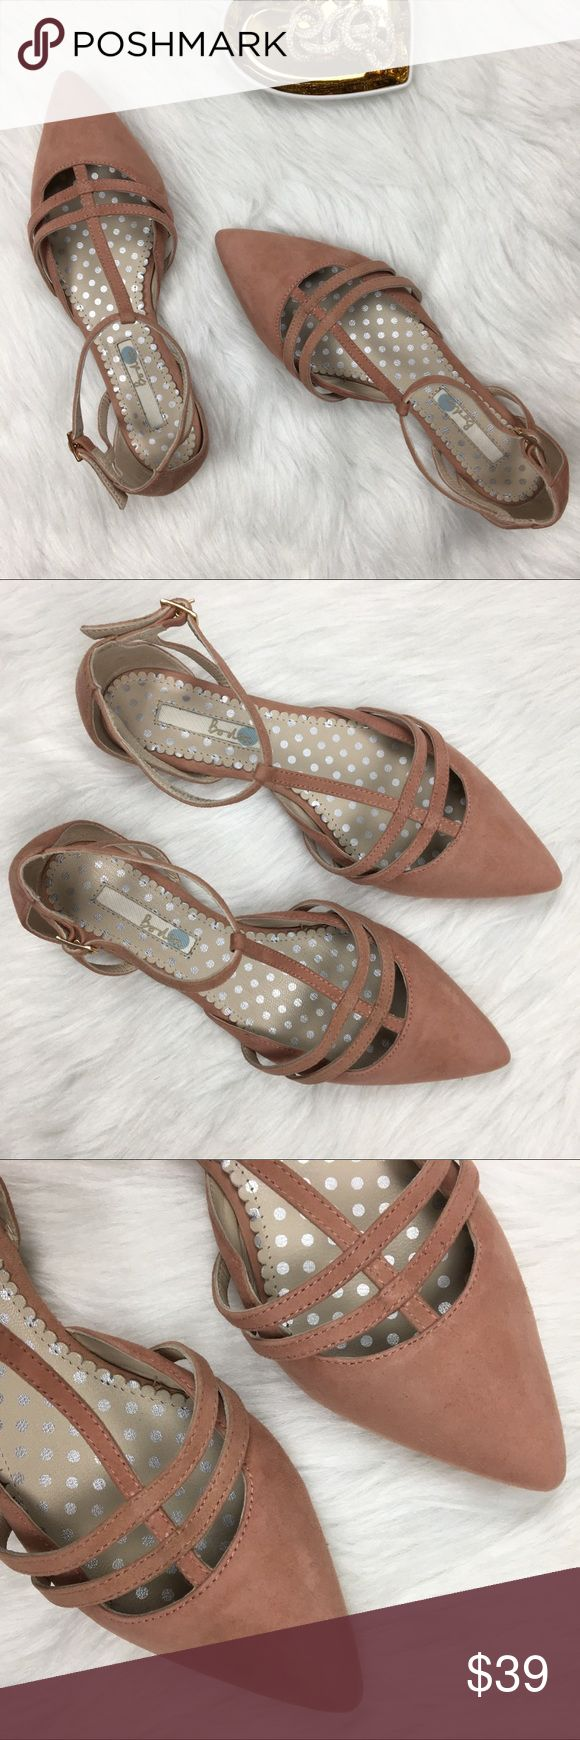 Boden | blush suede pointed toe flats Boden blush suede T-strap pointed toe flats. Excellent condition with very minor imperfections (very small area on one of the straps, small blemishes). Size 36 Boden Shoes Flats & Loafers